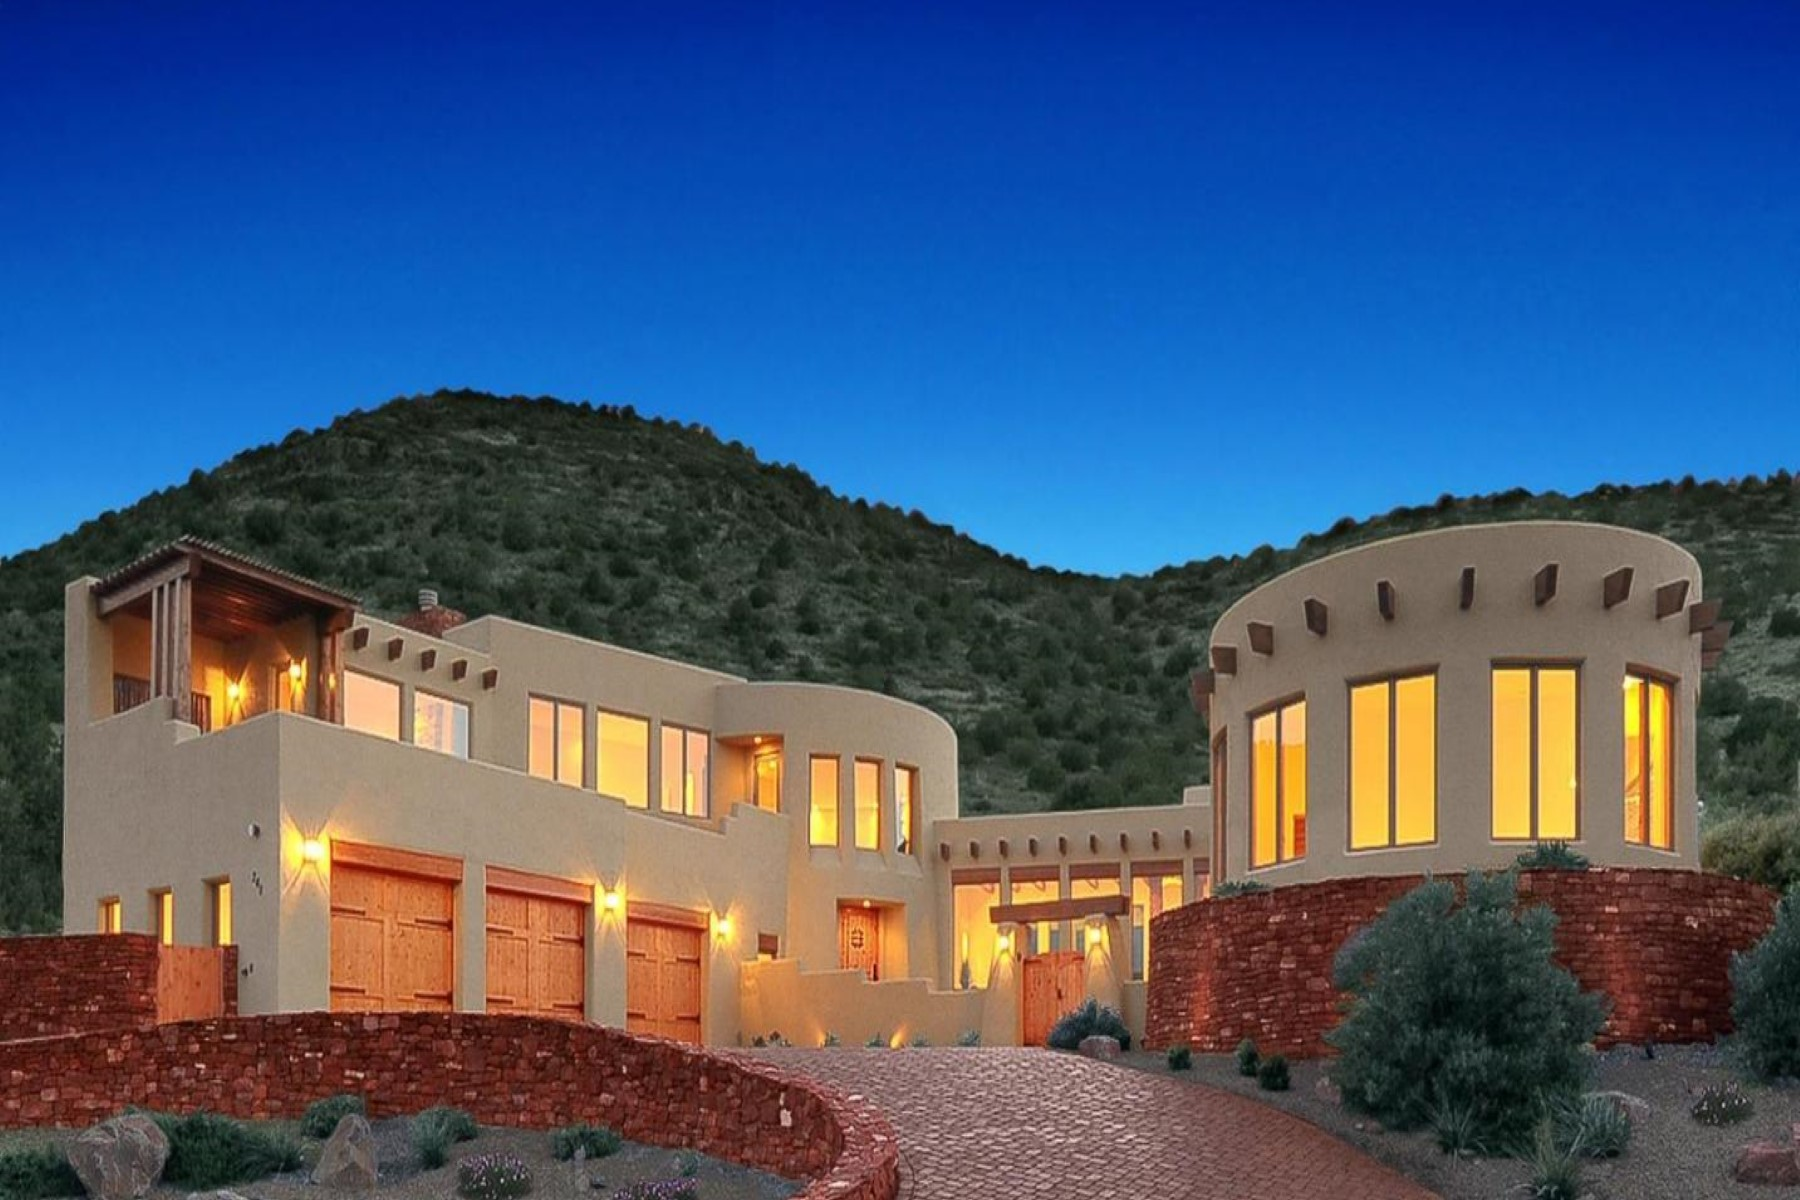 Single Family Home for Sale at Beautiful radiant heated luxury green home 240 Crystal Sky Dr. Sedona, Arizona, 86351 United States